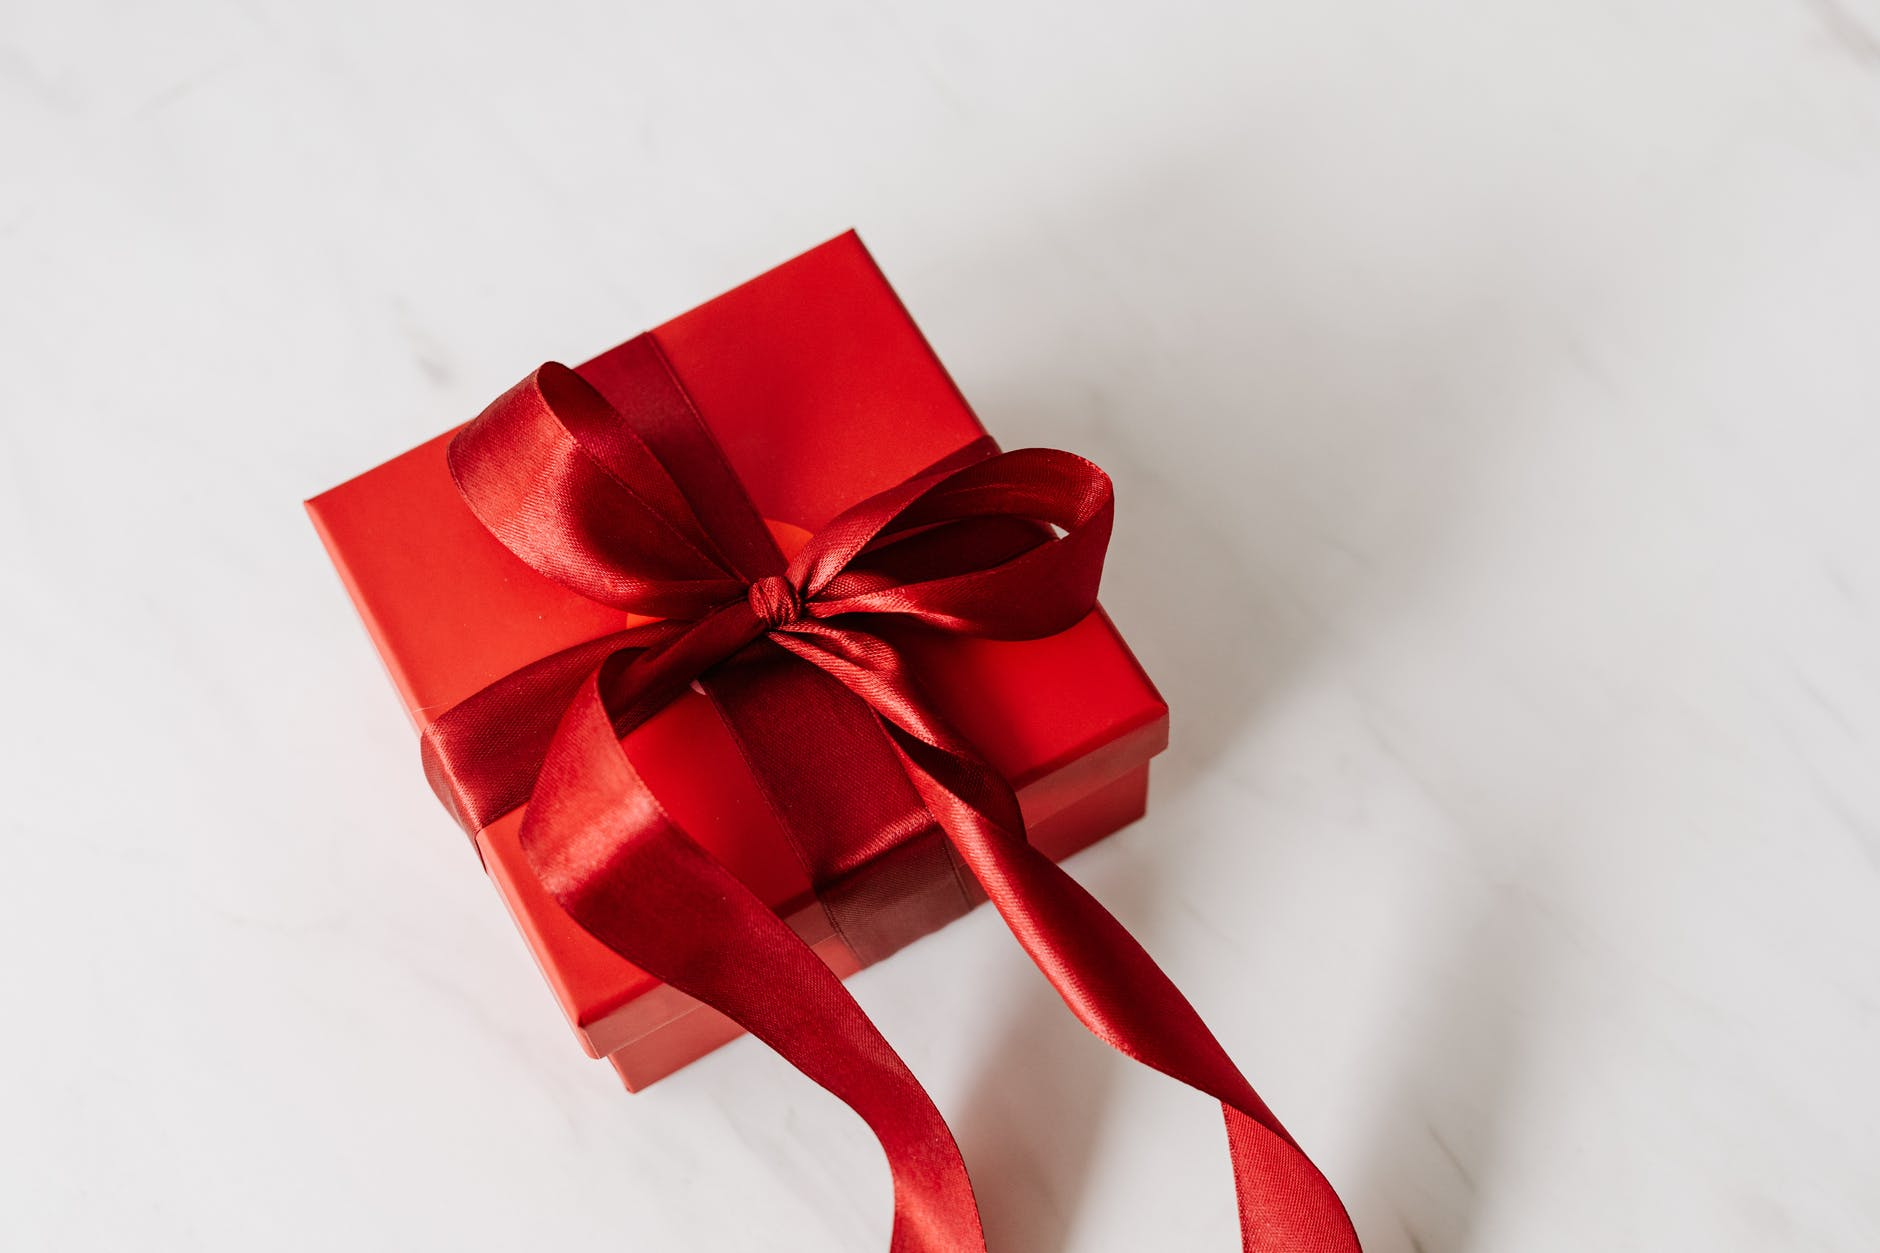 red gift box tied with ribbon